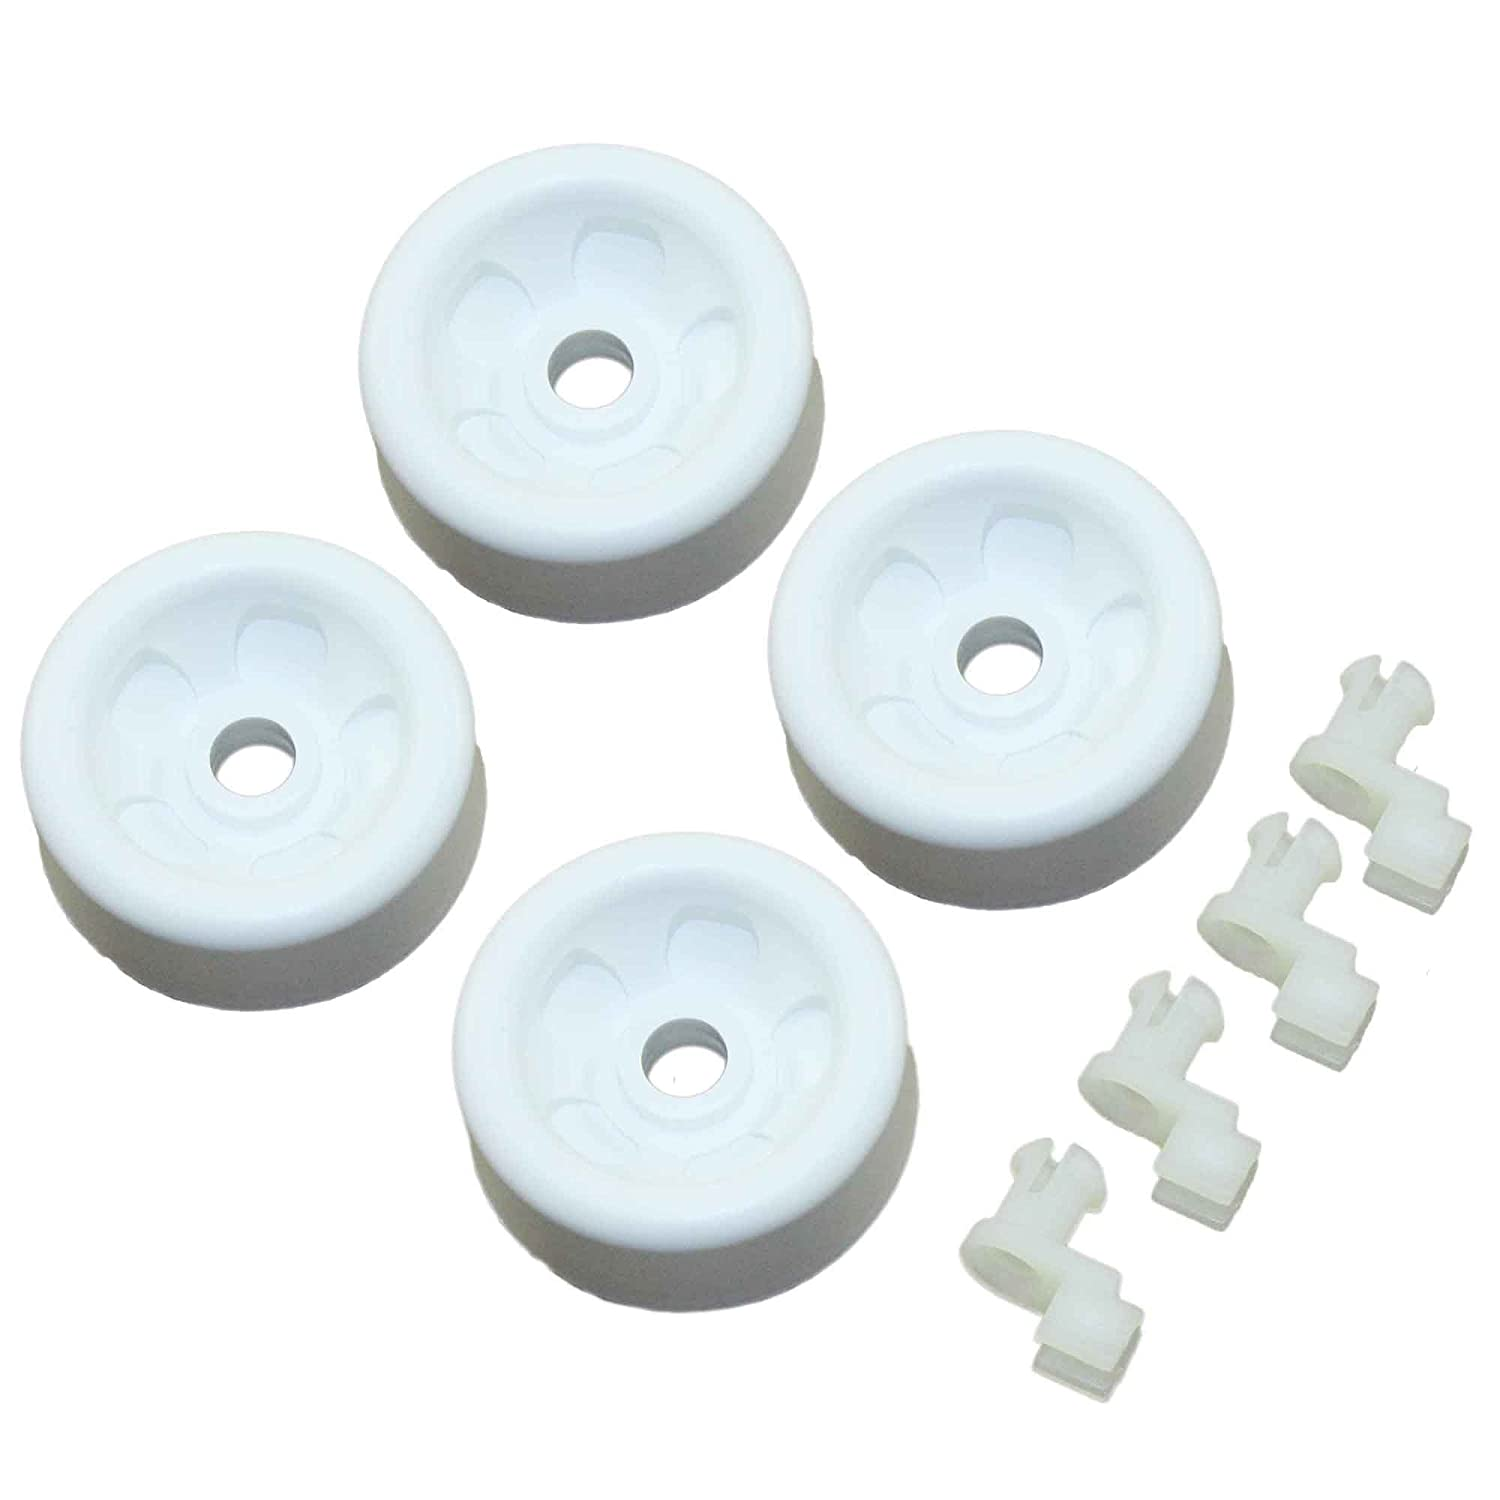 Supplying Demand WD12X271 Dishwasher 4 Pack Of Wheels WD12X0271 WD12X0440